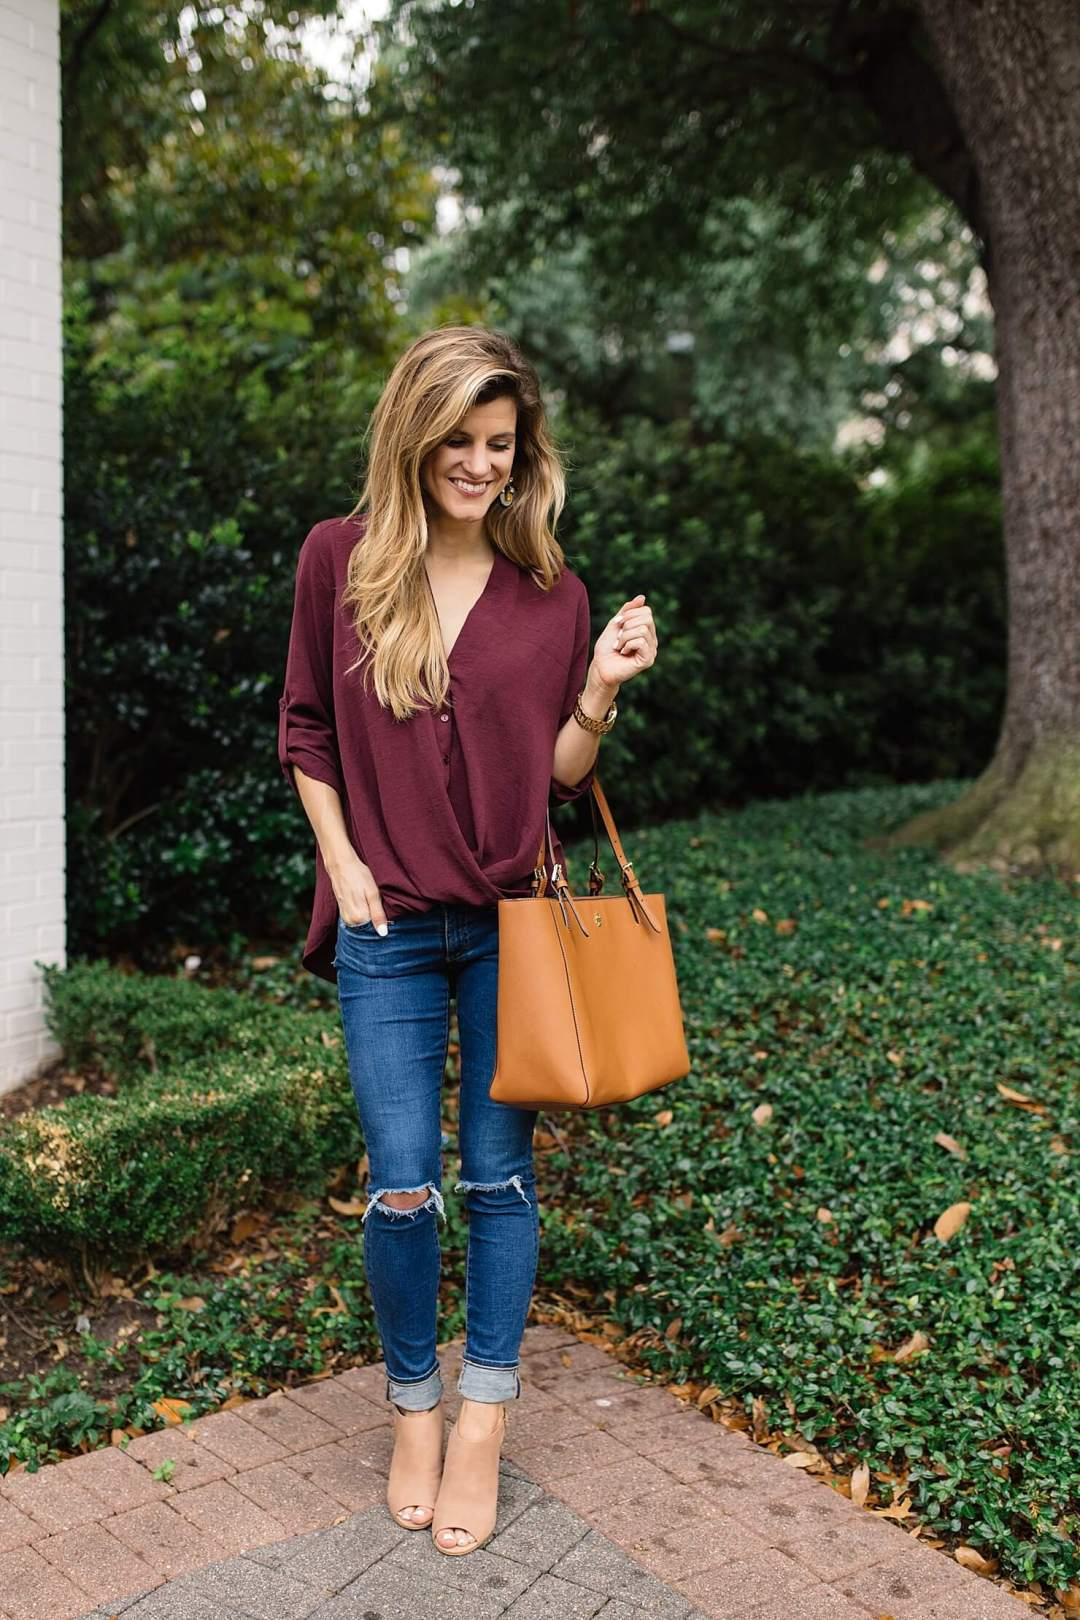 transitional summer to fall cute outfit idea with burgundy blouse, distressed denim and peep toe booties